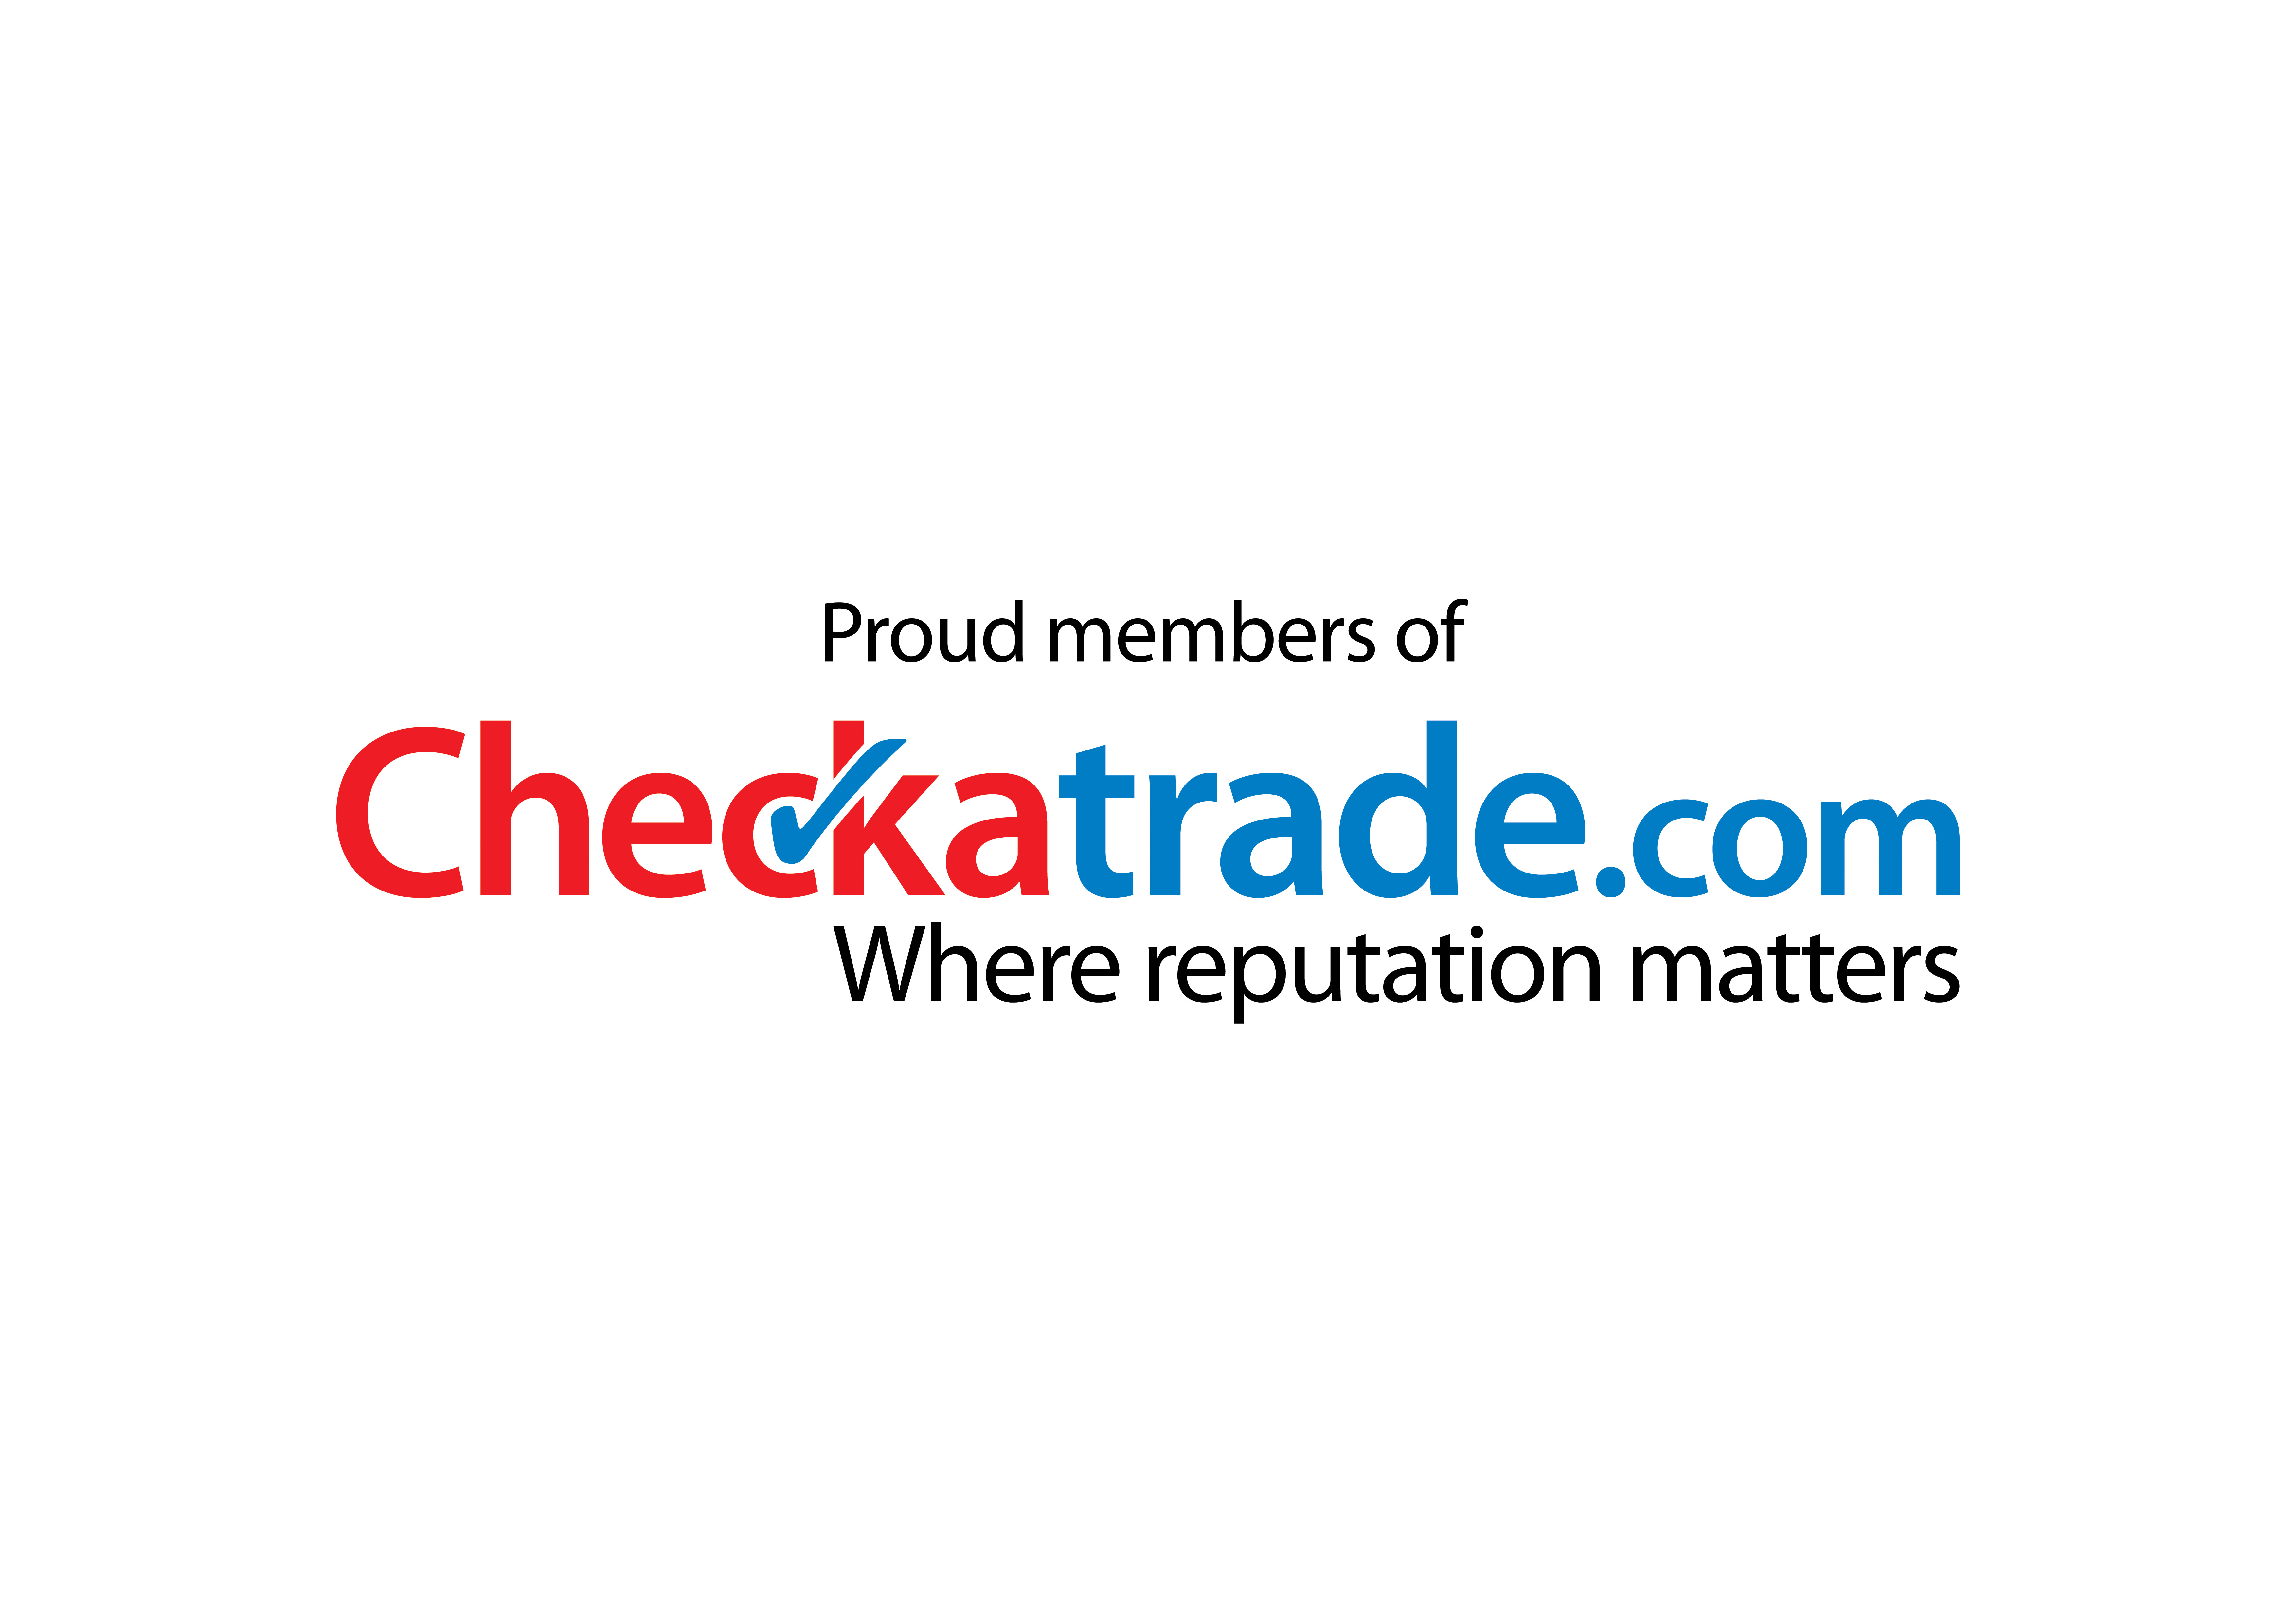 Force 8 is now a proud member of Checkatrade